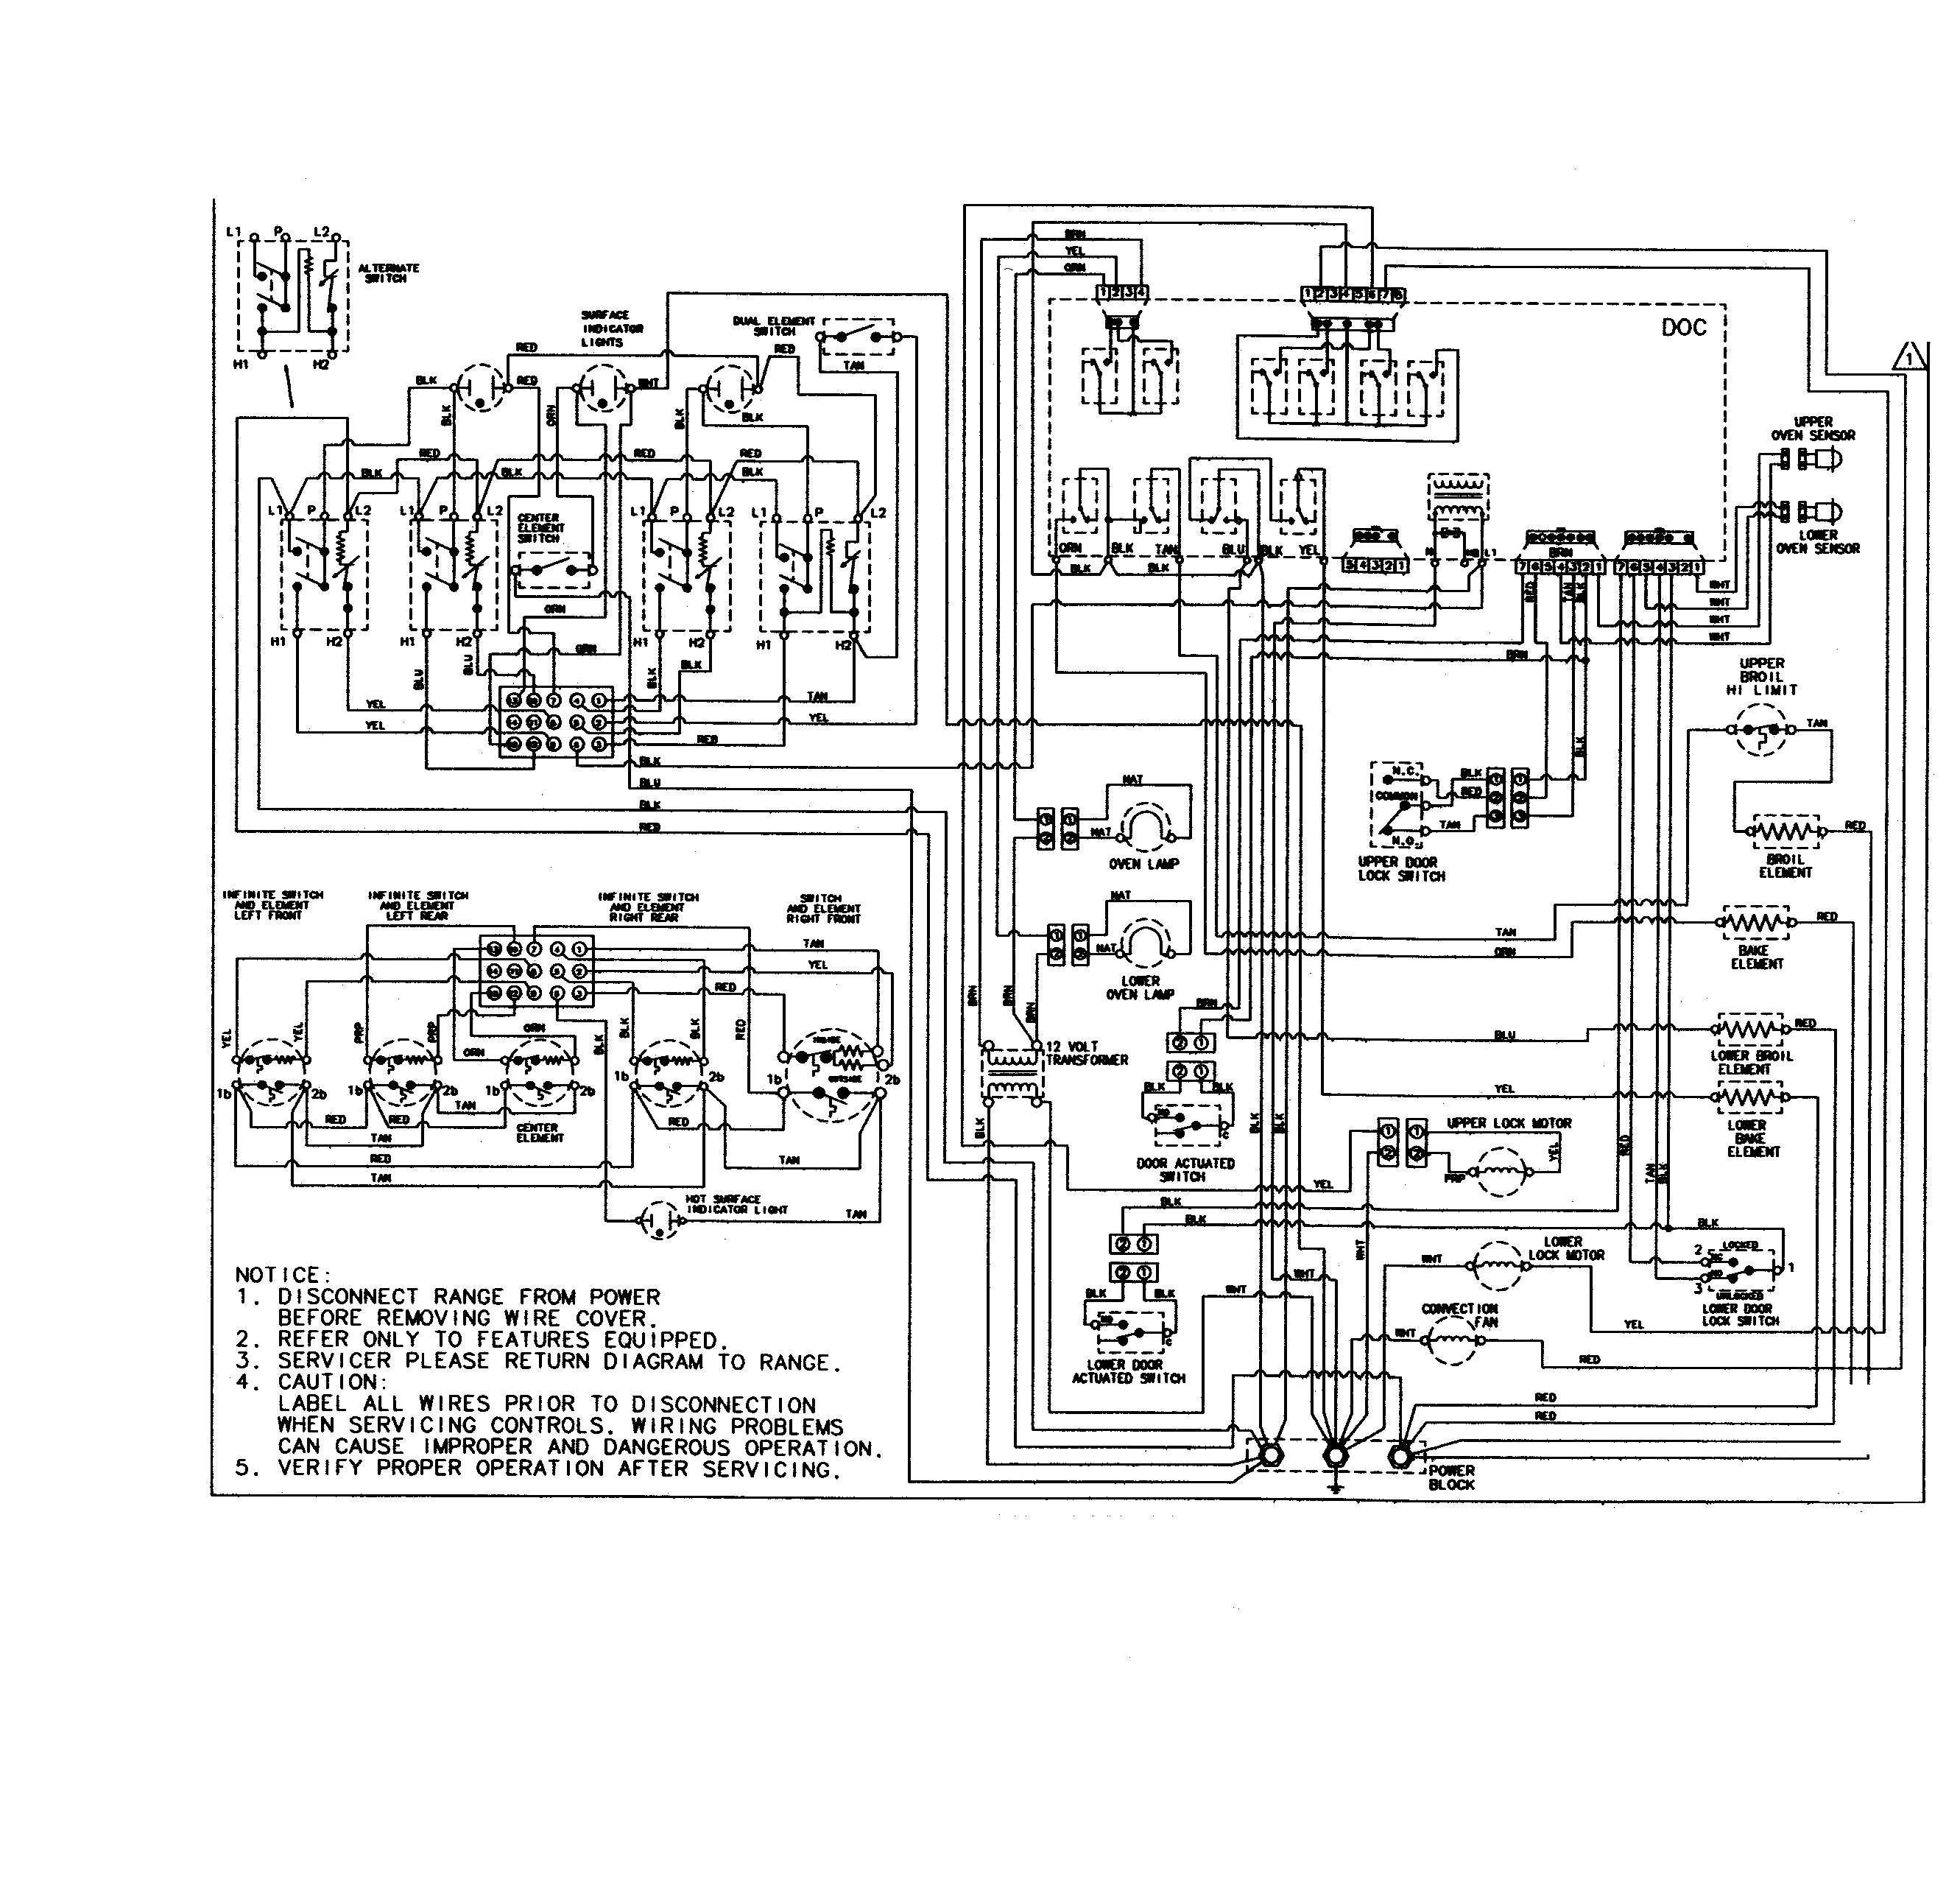 Maytag MER6772BAS Range Timer - Stove Clocks and Appliance Timers on hotpoint stove wiring diagrams, kenmore refrigerator wiring diagrams, estate stove wiring diagrams, gas stove wiring diagrams, kitchenaid stove wiring diagrams,